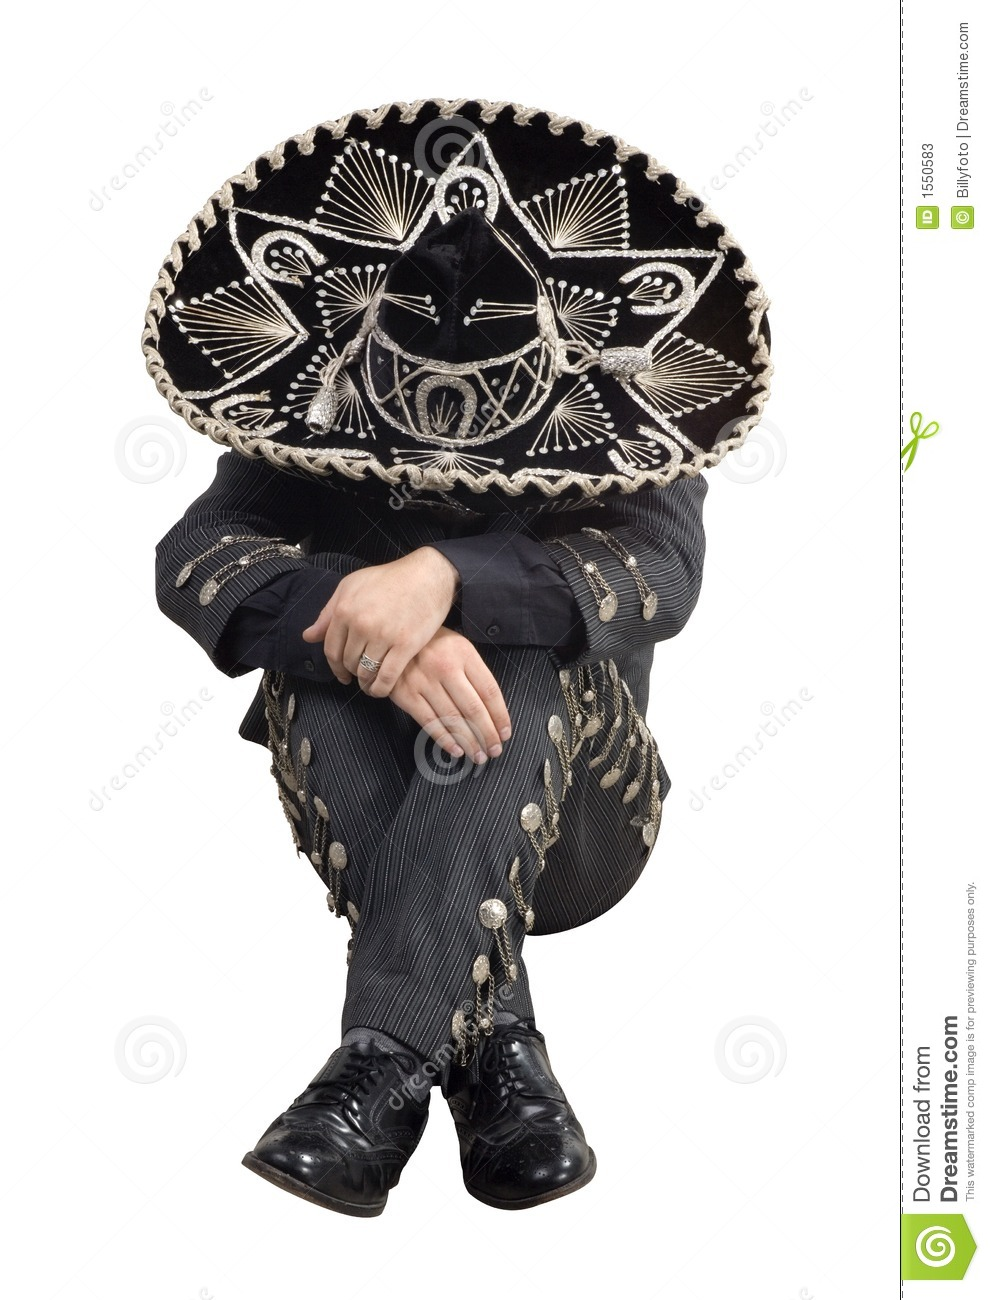 More similar stock images of ` Mexican mariachi sleeping `